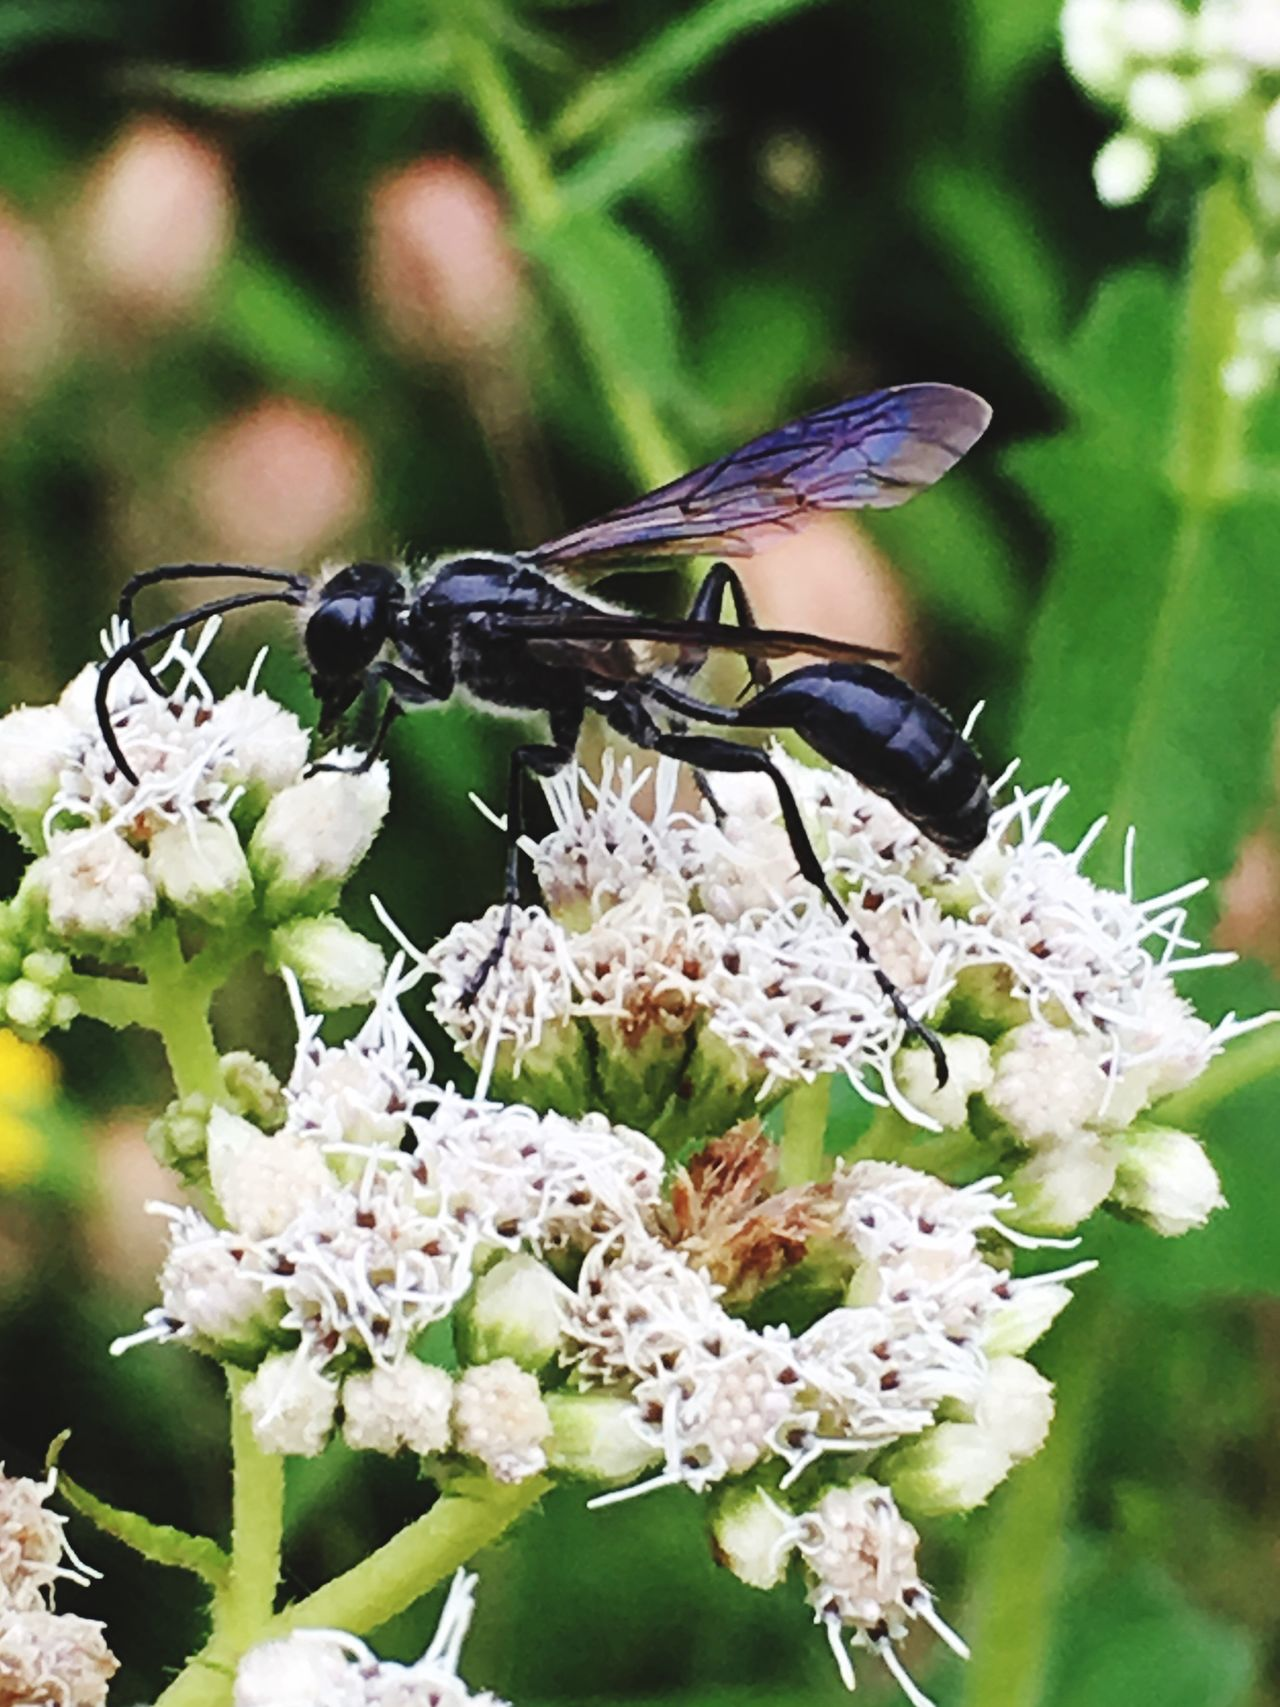 Wasp ! Gardening Wasp At Work Loving My Flower Flower Pollenation 'flowers And Plants Green Thumb Summers In Ontario Garden Photography My Garden @my Home Photography Mother Nature My Passion ❤